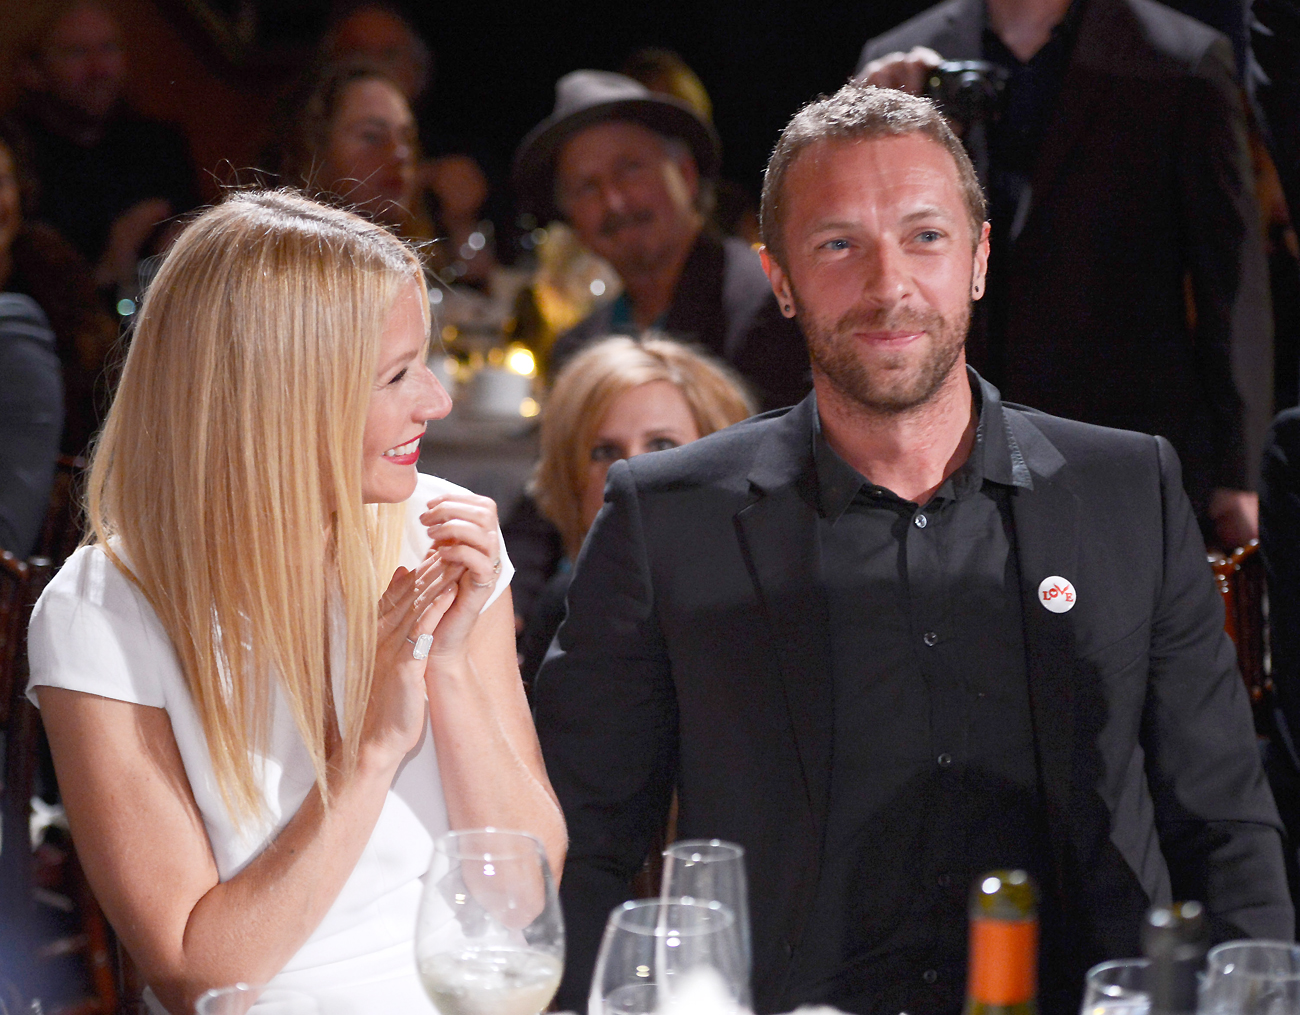 Gwyneth Paltrow and Chris Martin Moments - Lead/Slide 1